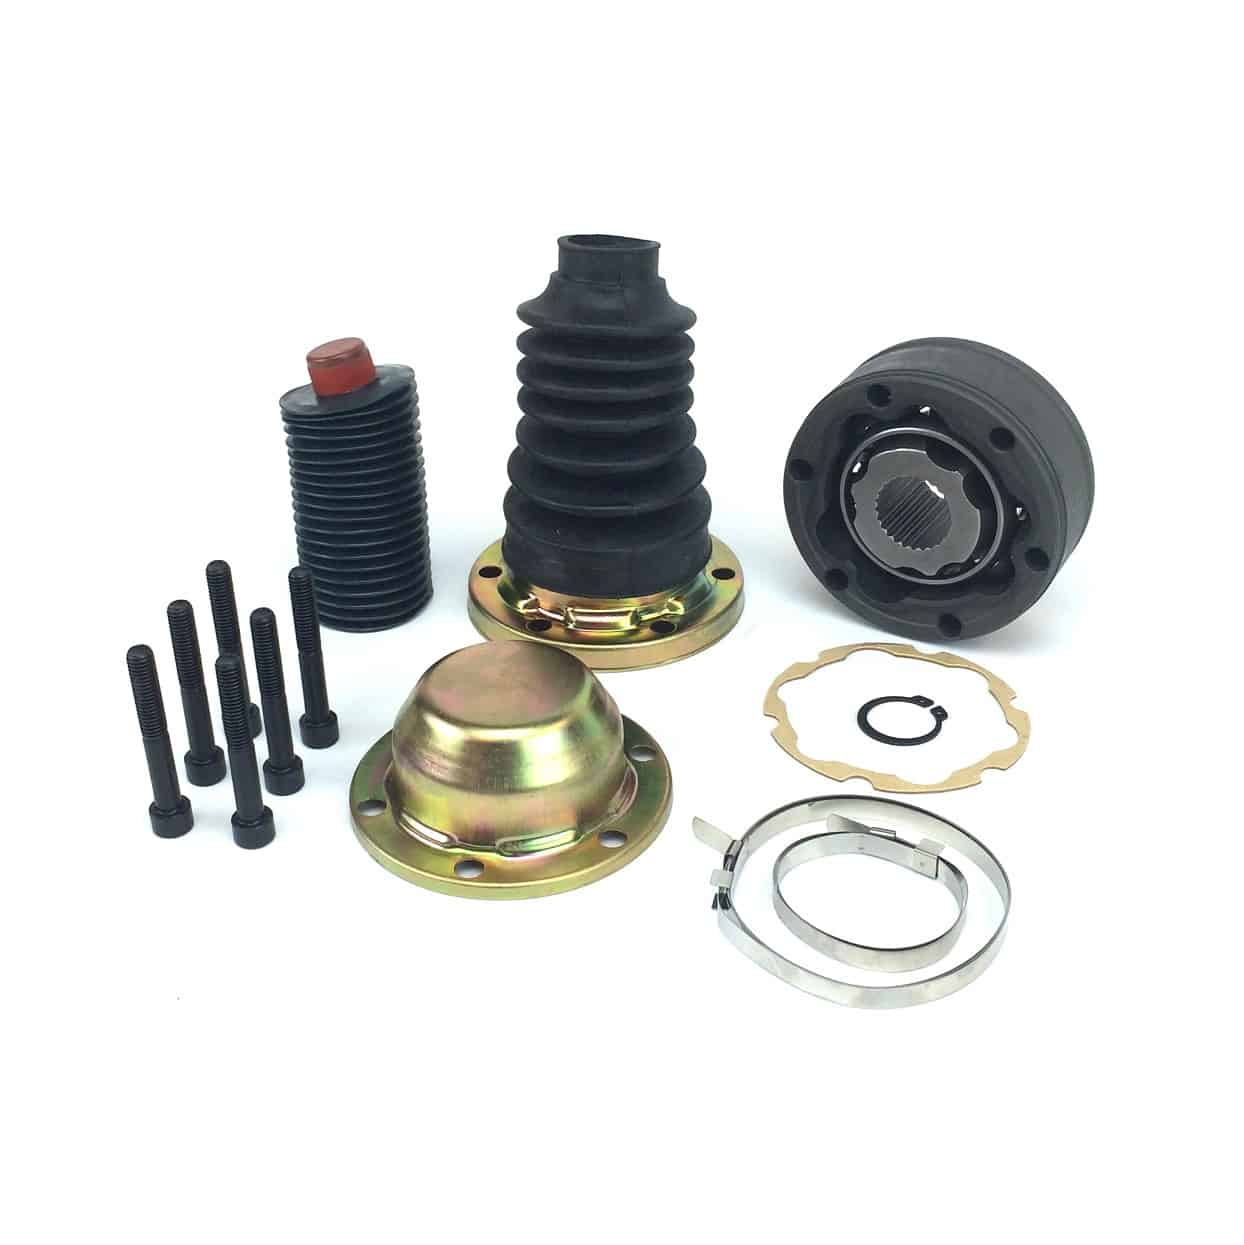 hight resolution of jeep grand cherokee cv joint repair kit 99 04 liberty 02 07 auto truck parts canada